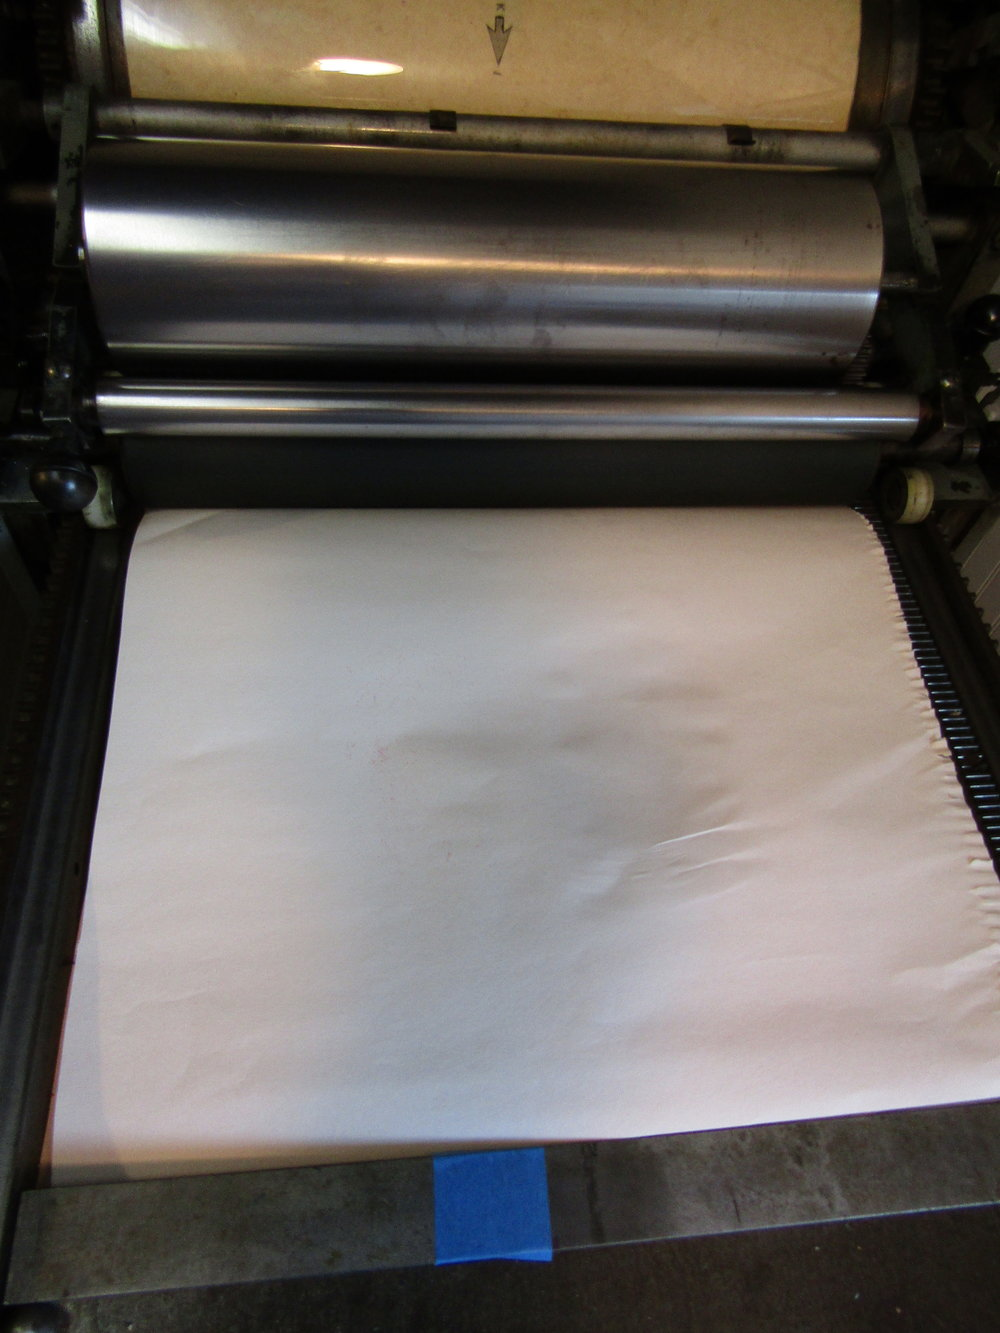 I cover the towel arrangement with newsprint as a way of keeping it clean. I then roll the cylinder and rollers over this set-up and print.